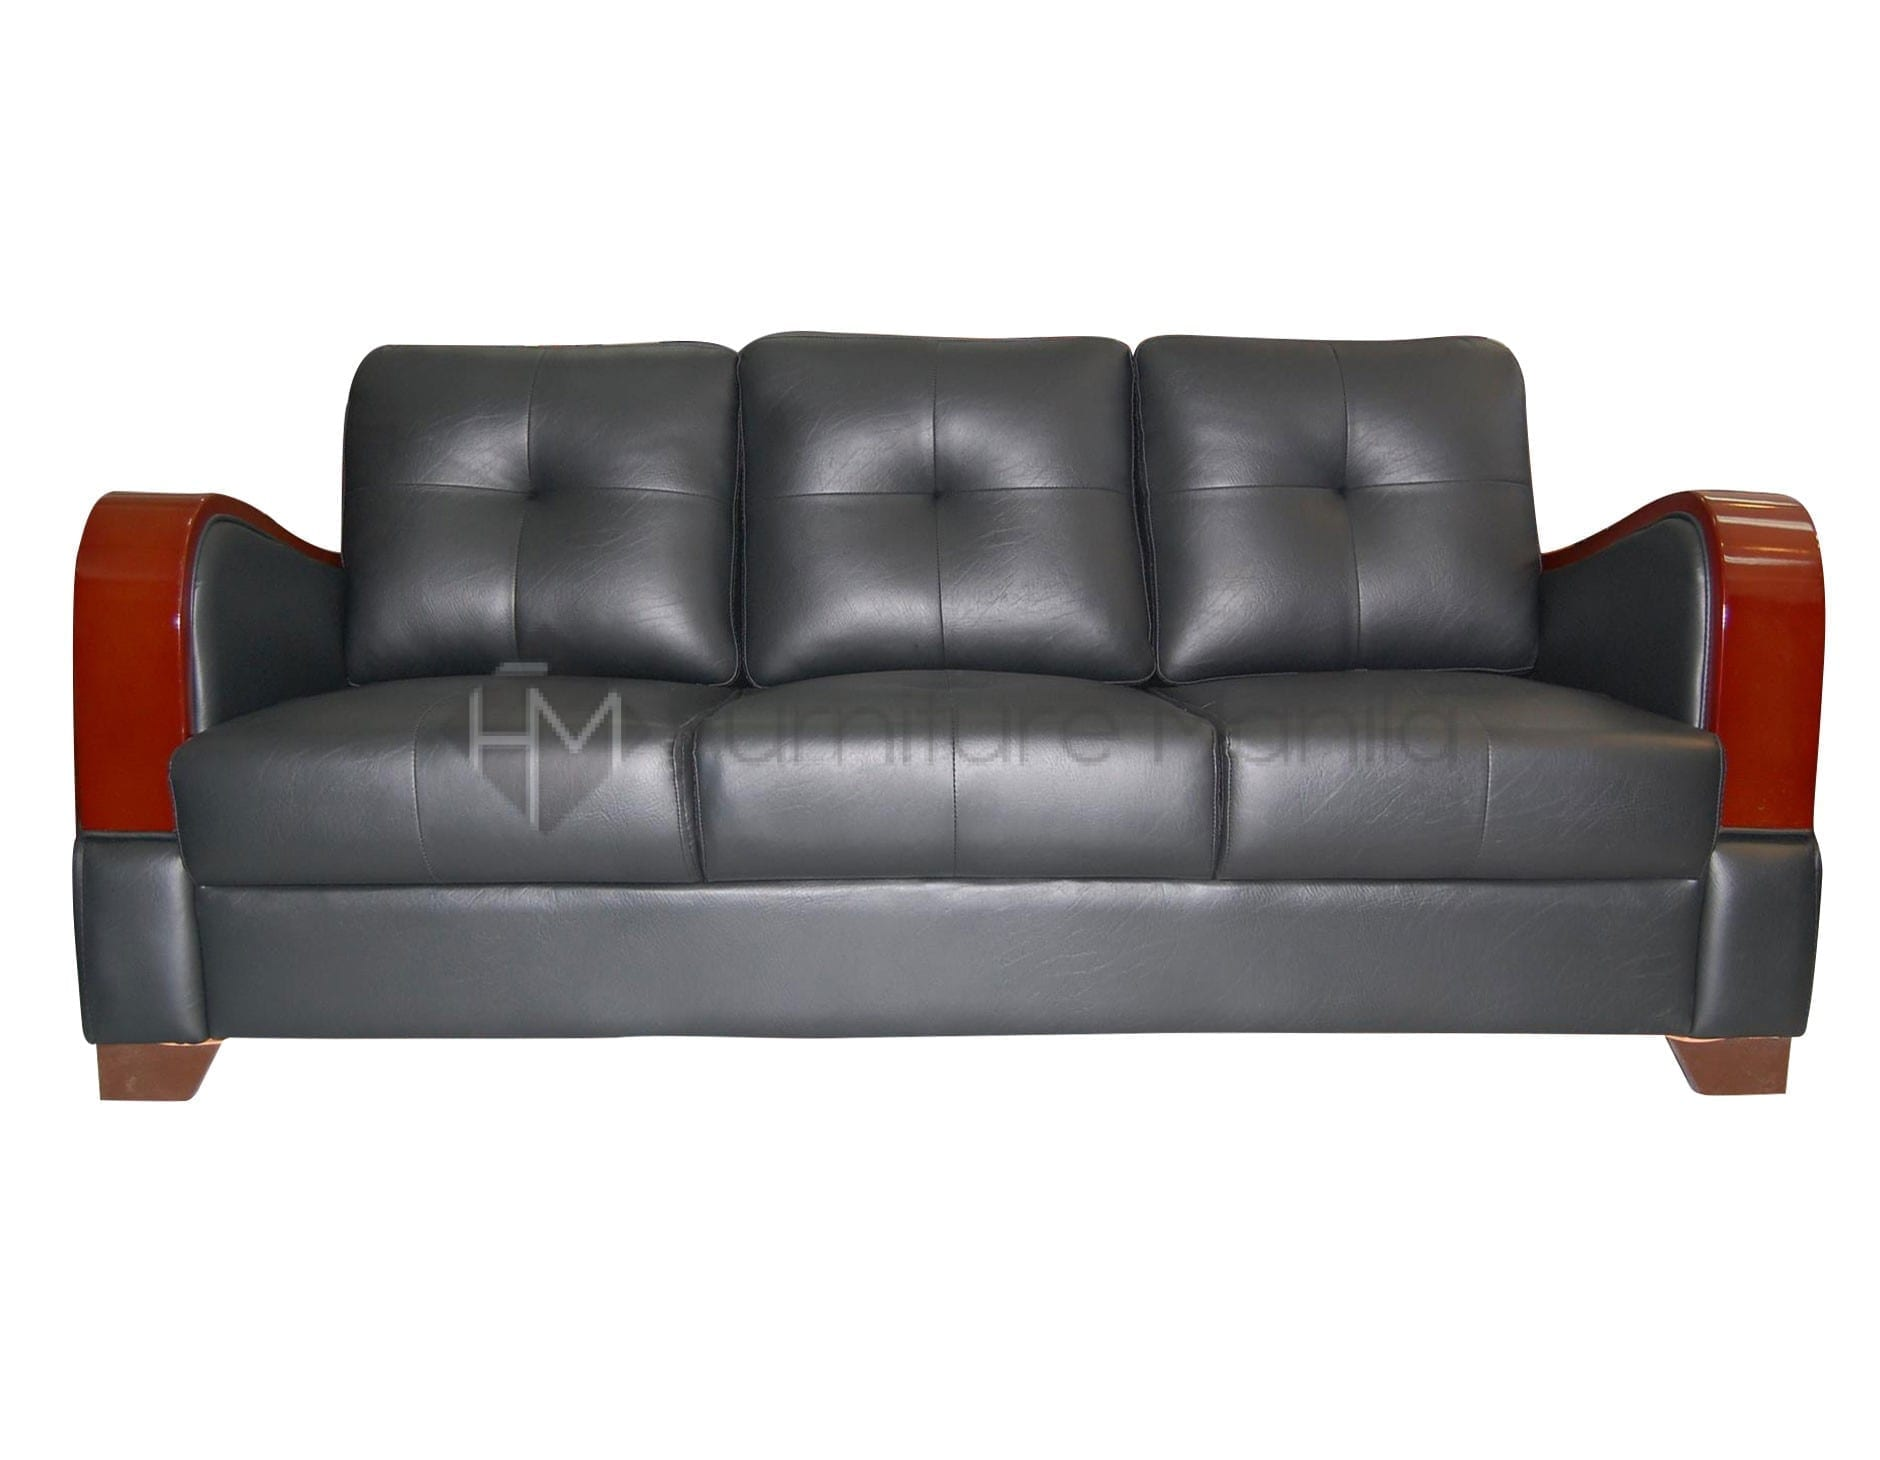 affordable sofa bed metro manila beige tufted toronto mhl0207 set home and office furniture philippines